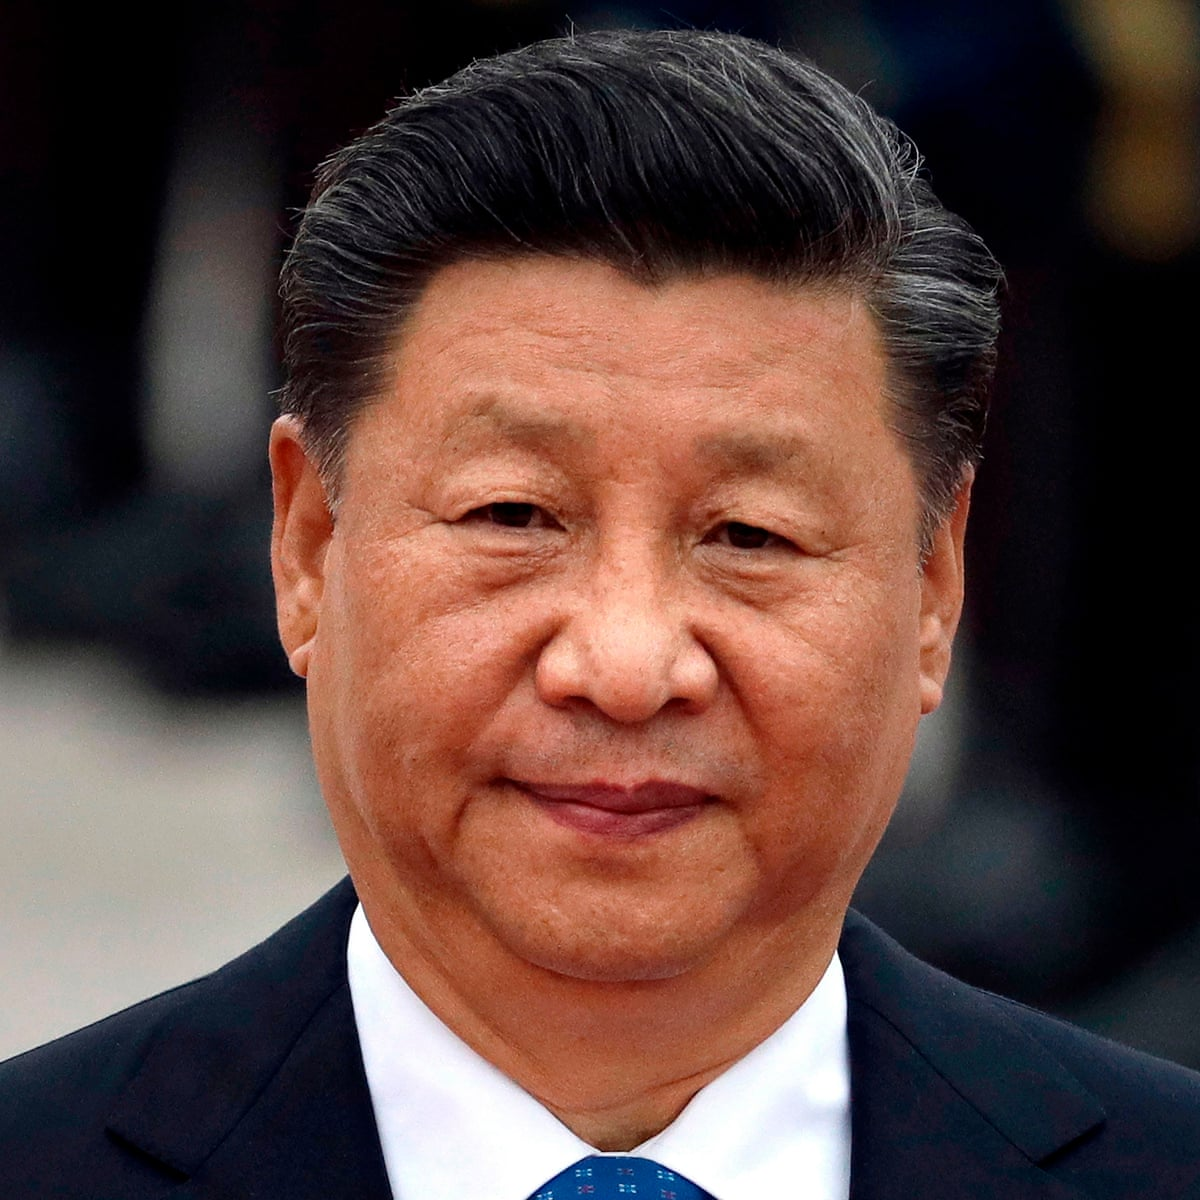 Chinese Journalists To Be Tested On Loyalty To Xi Jinping World News The Guardian